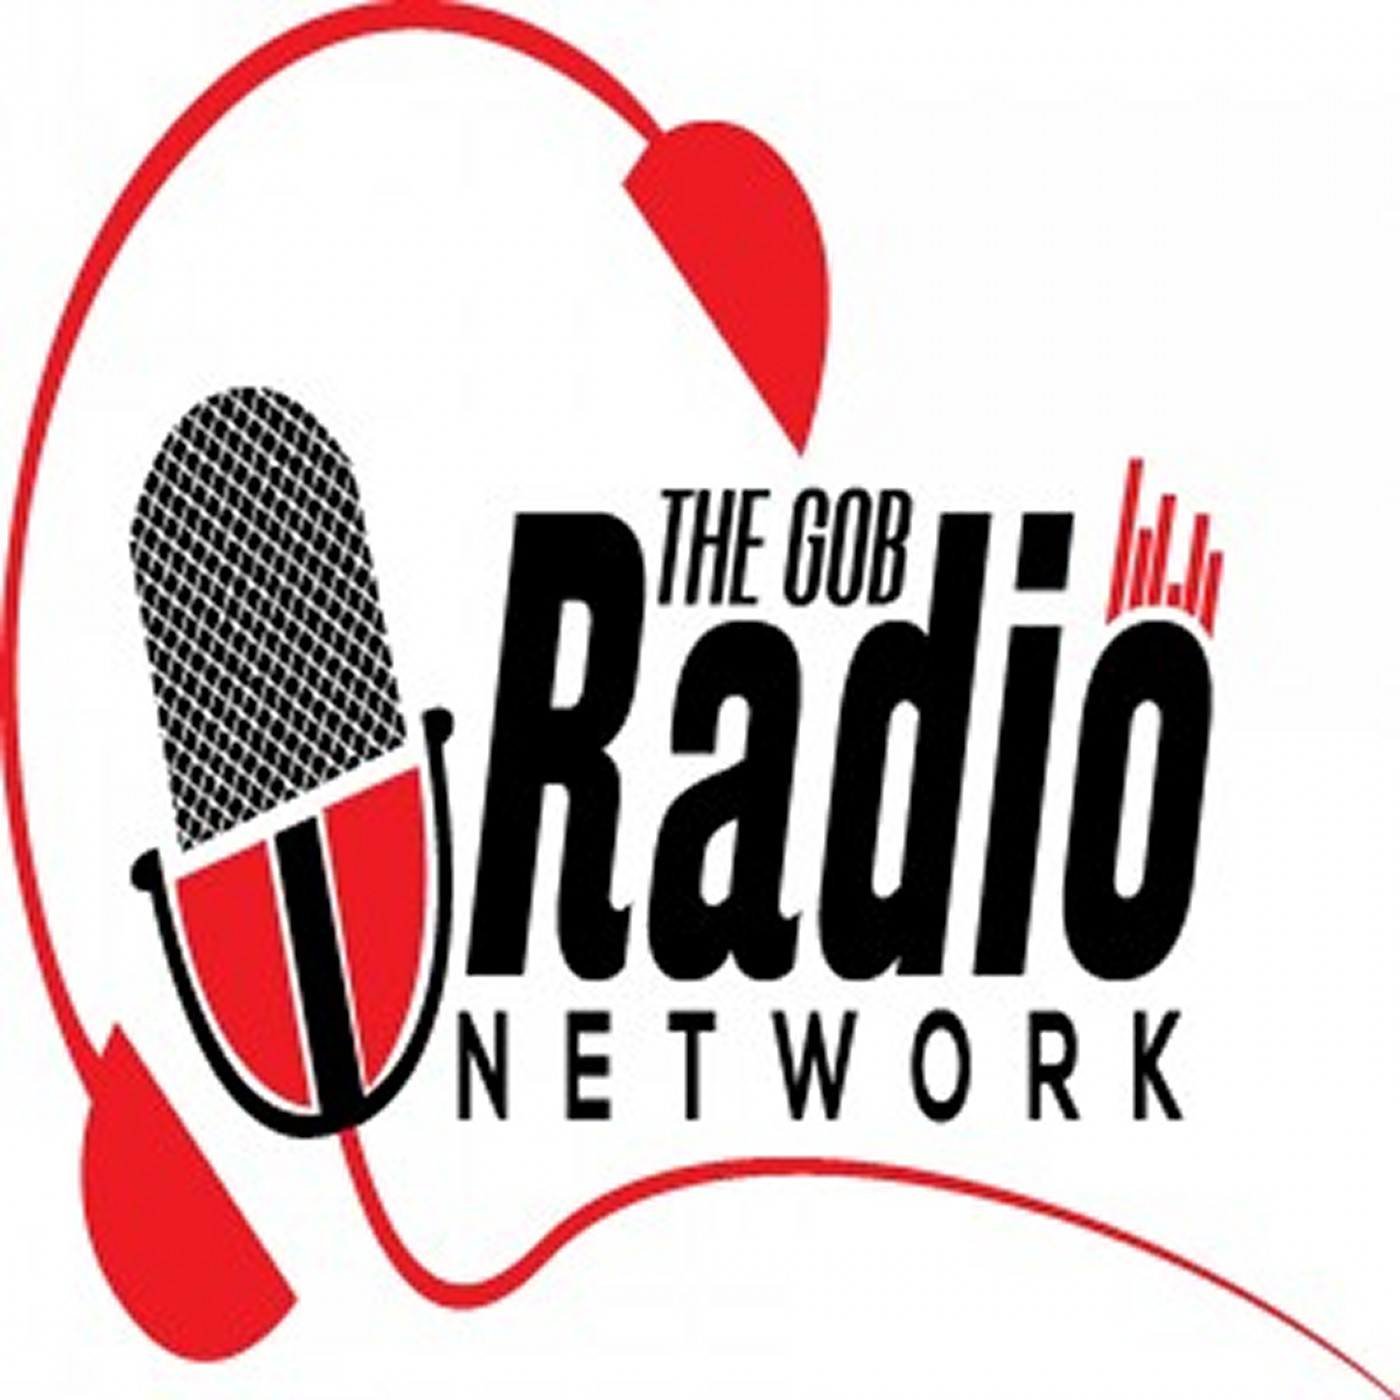 The GOB Radio Network